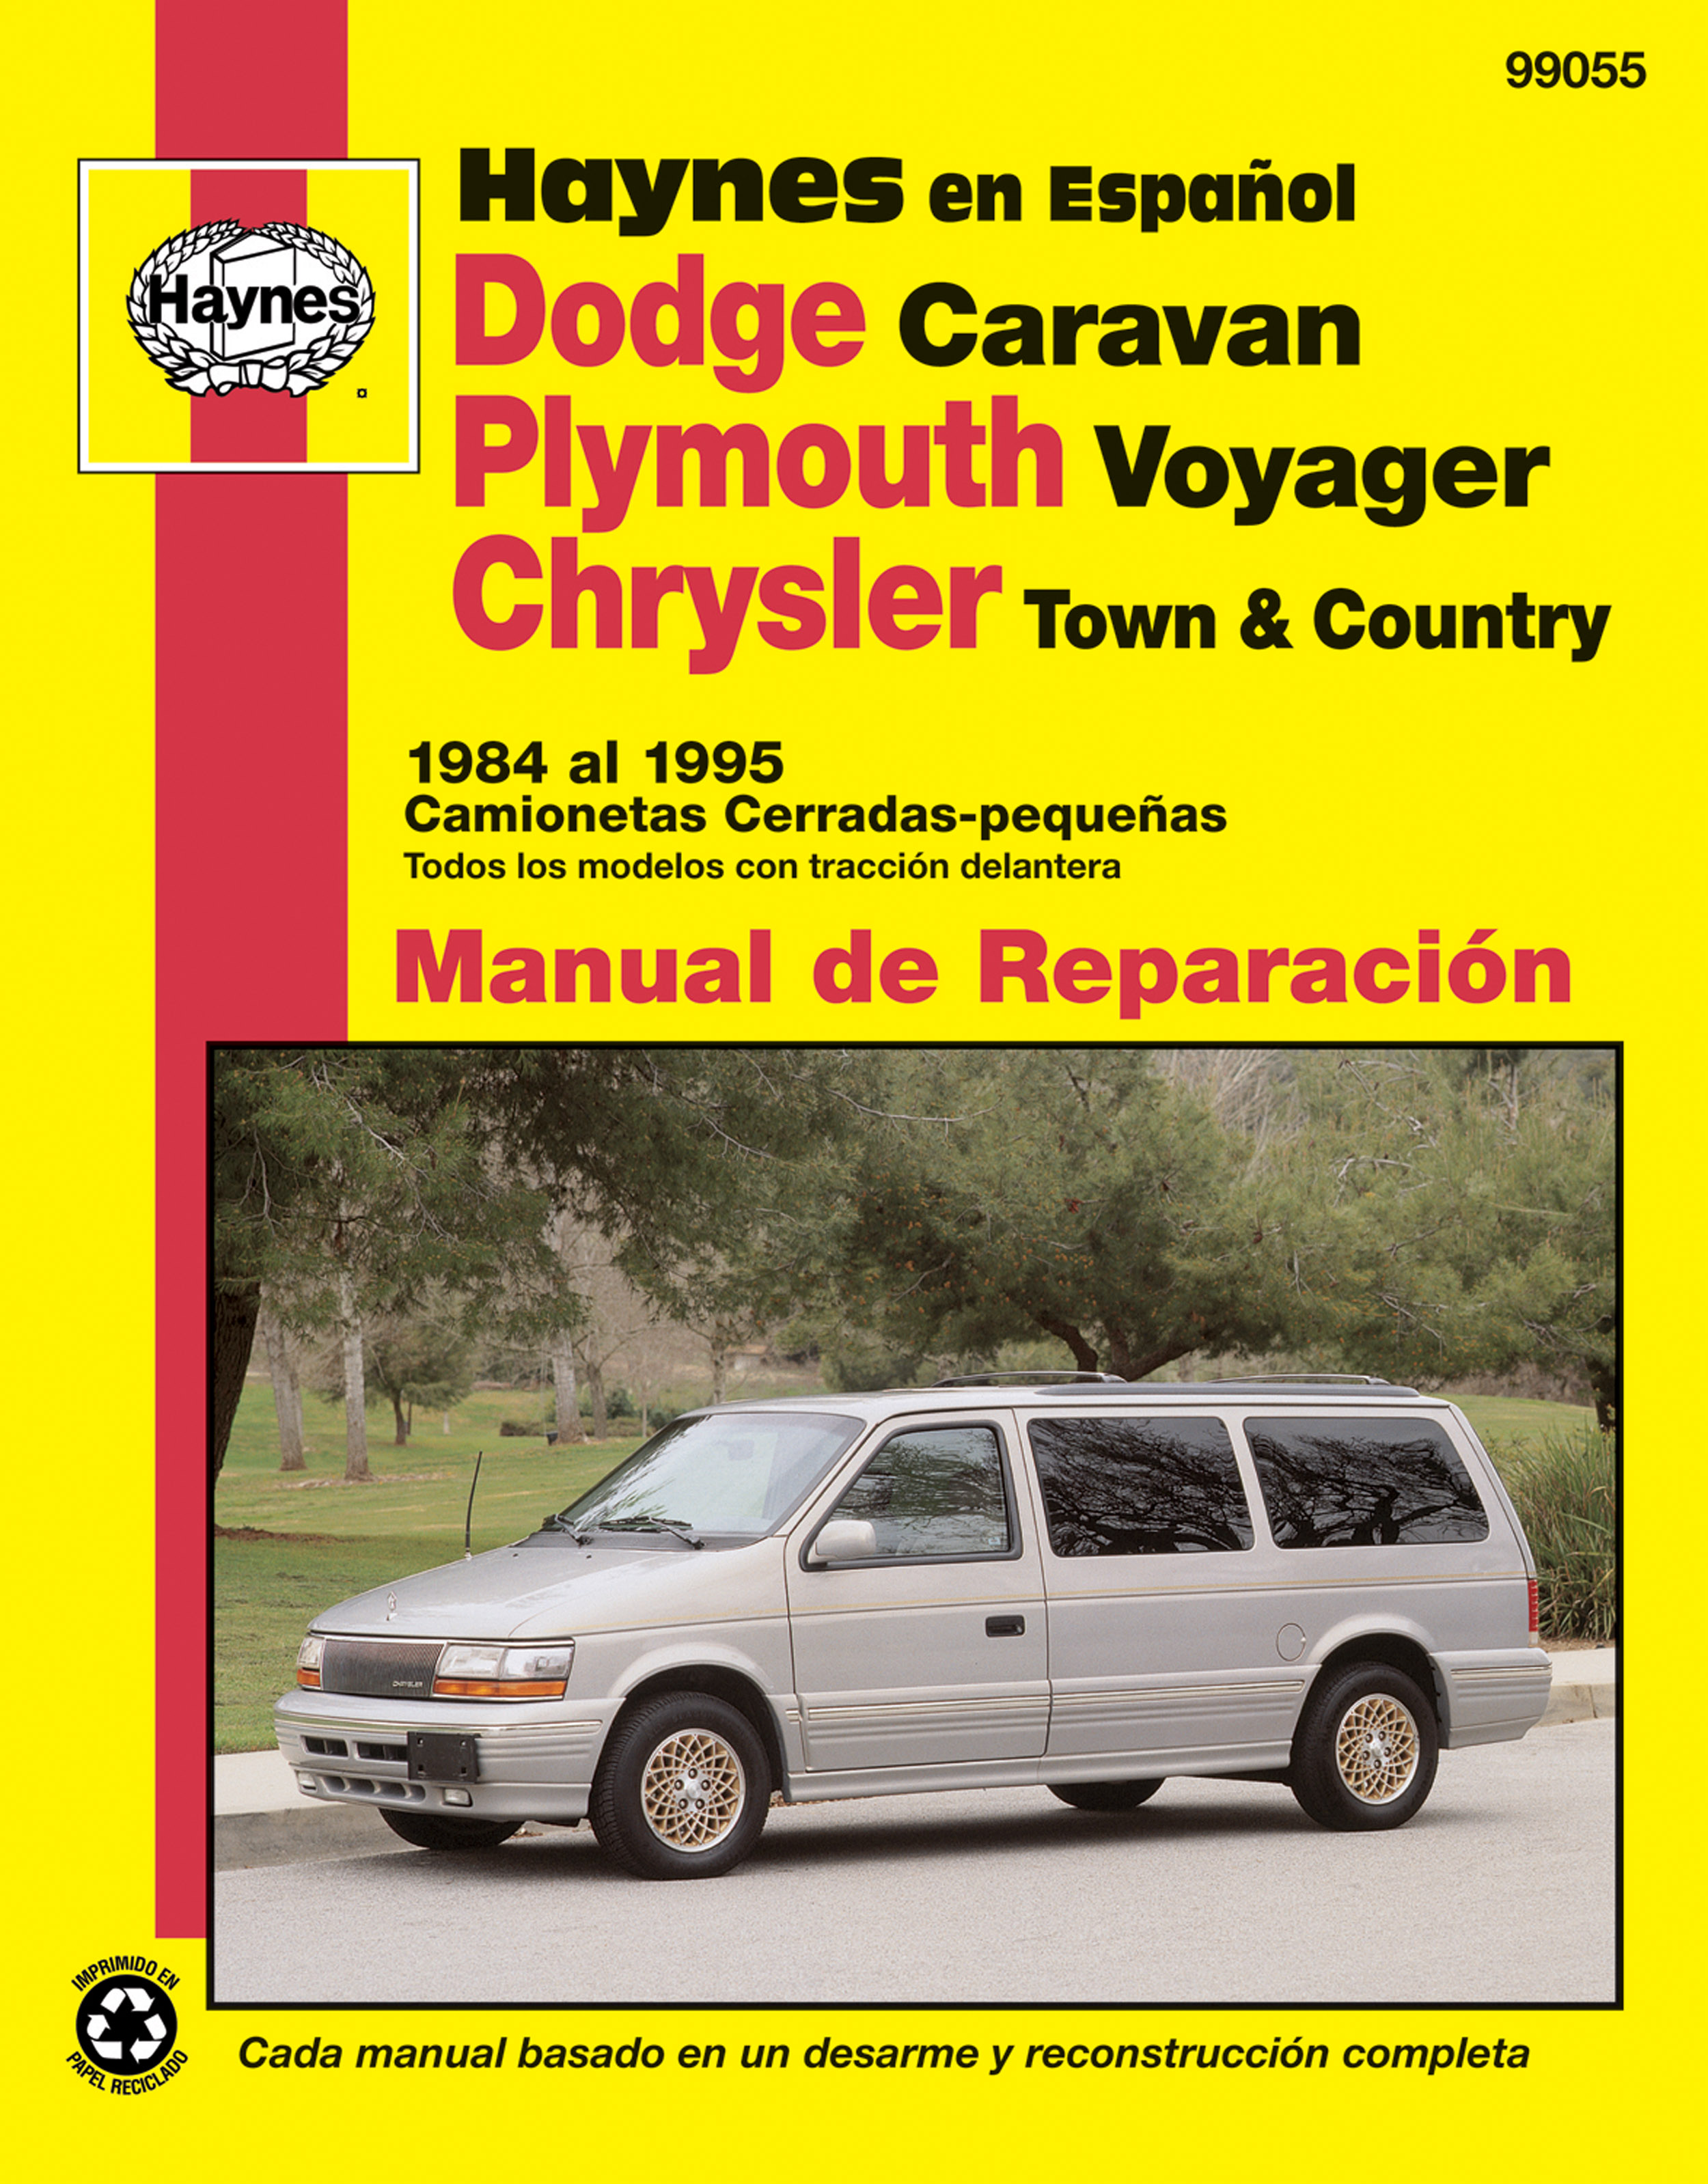 dodge caravan plymouth voyager chrysler town country camionetas rh haynes com 1993 Plymouth Voyager Problems 1993 Plymouth Voyager Problems